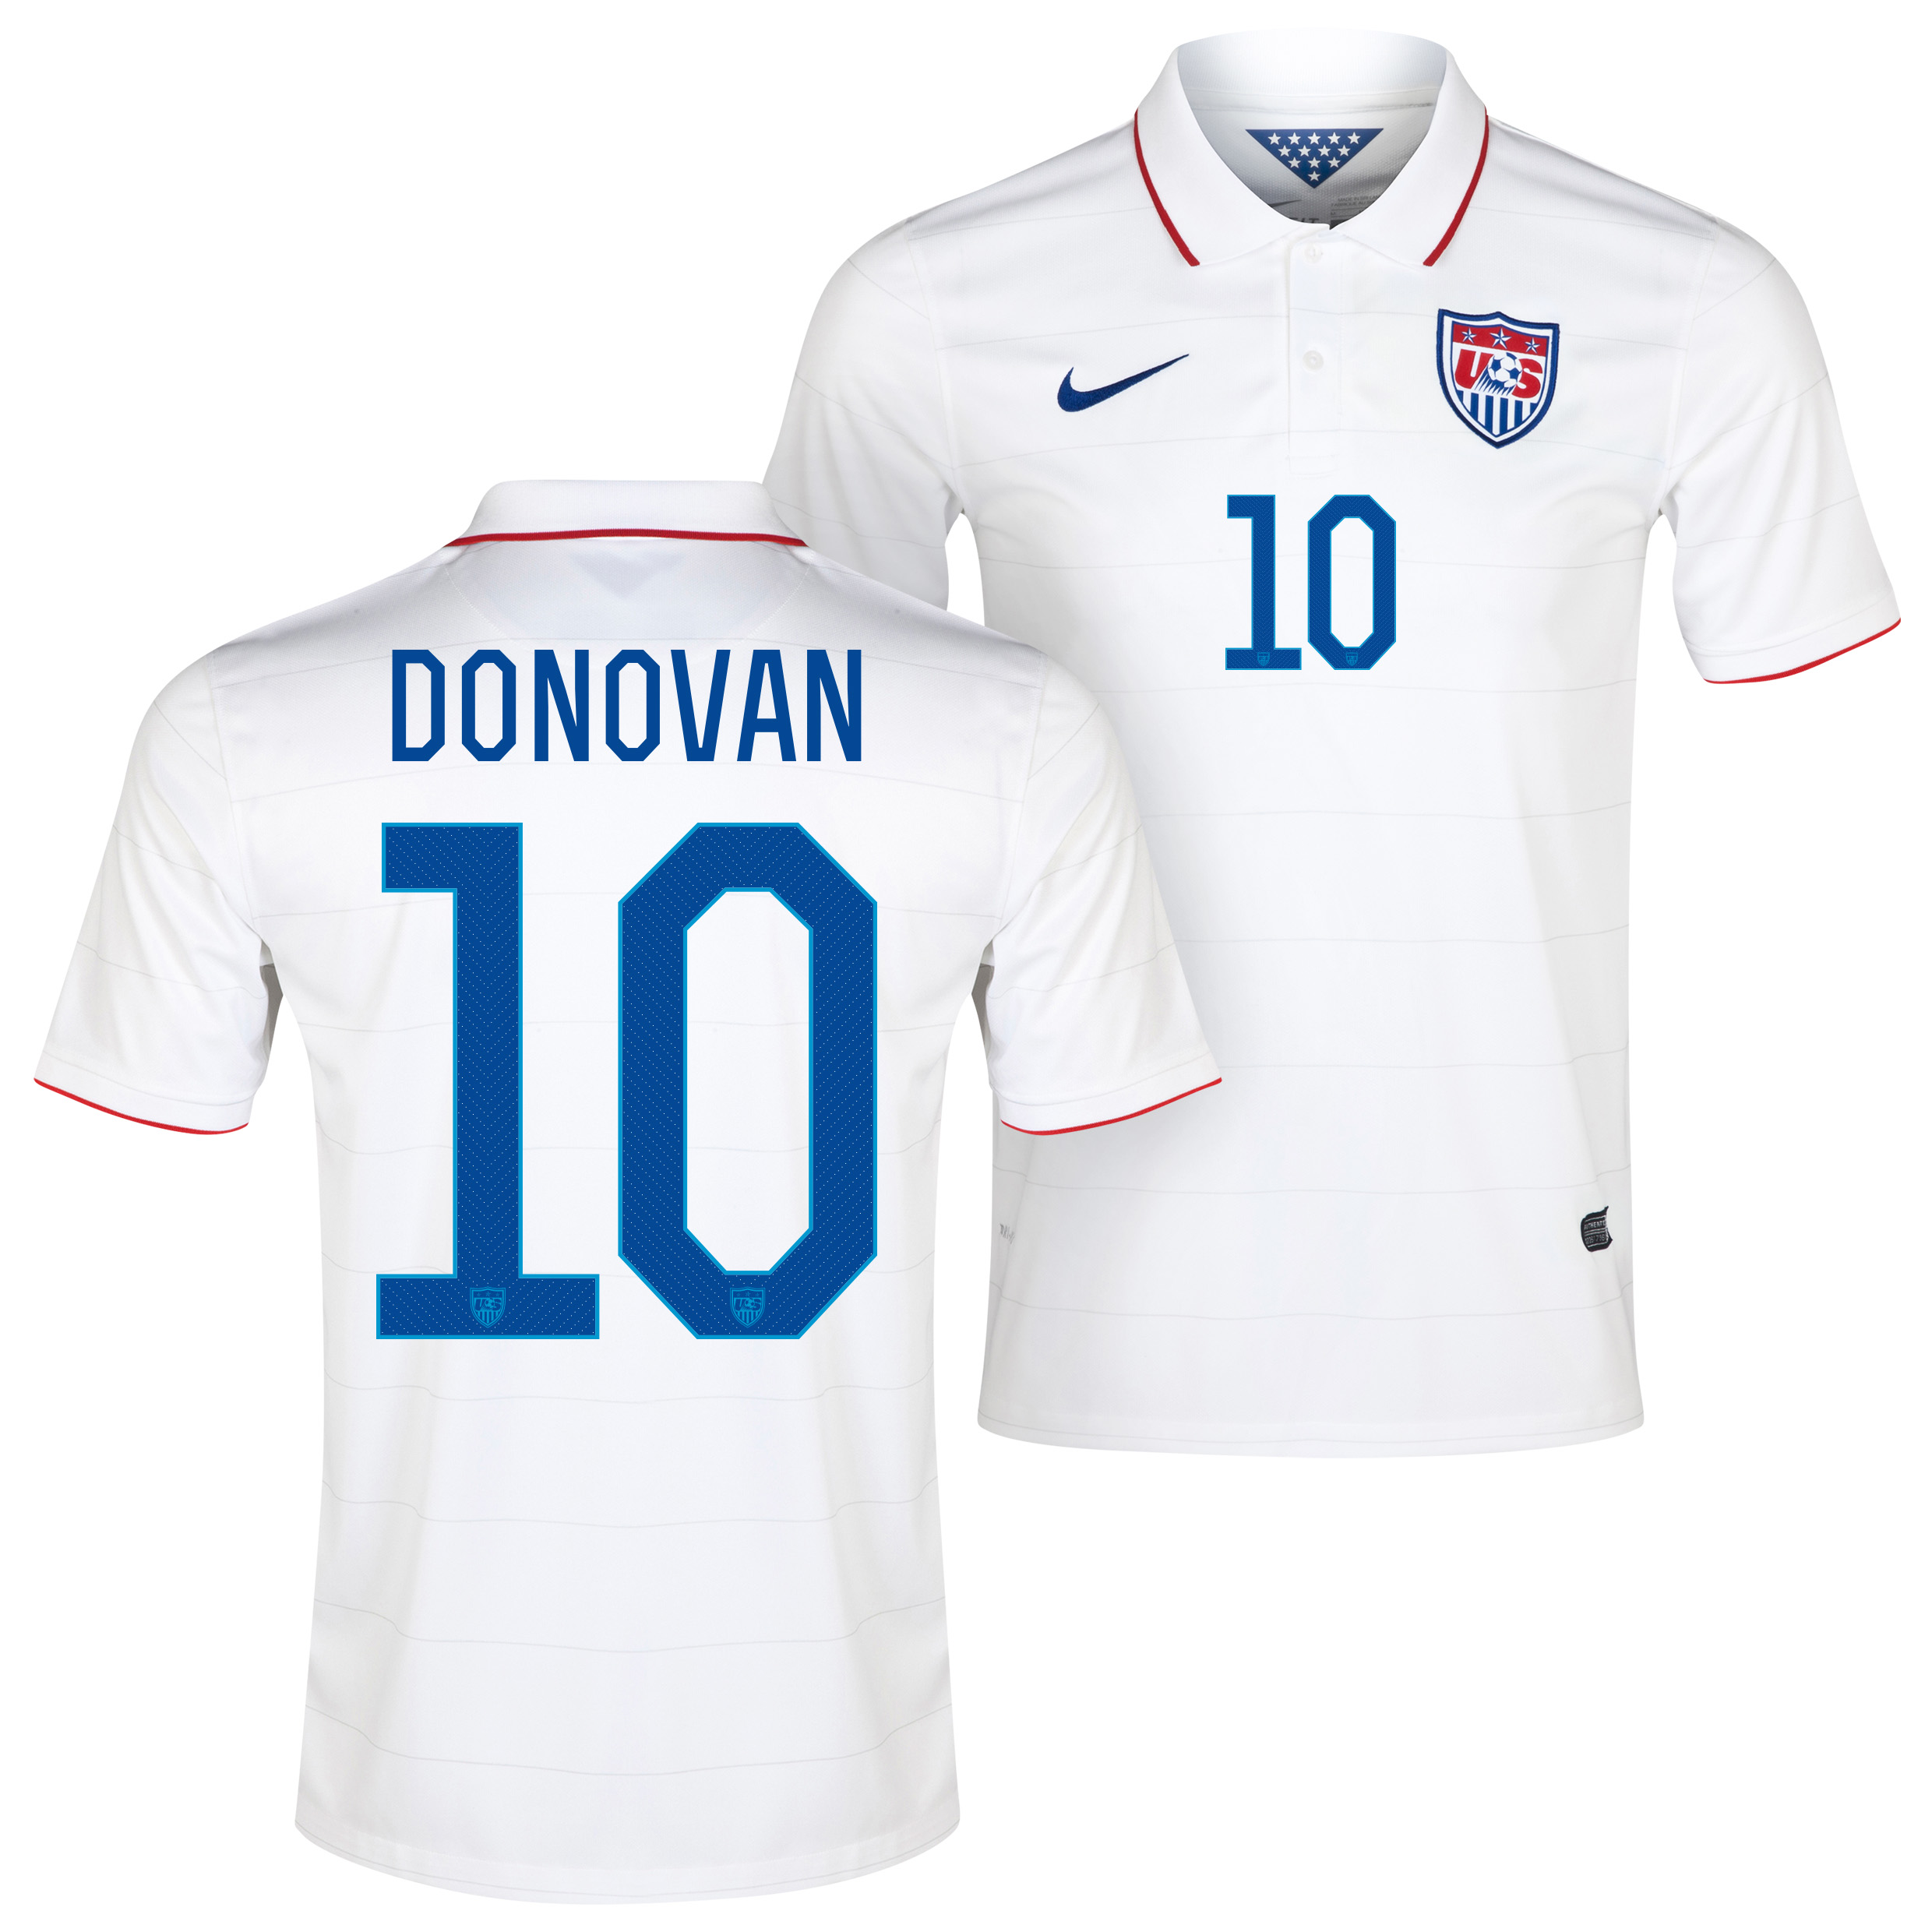 USA Home Shirt 2013/15 White with Donovan 10 printing